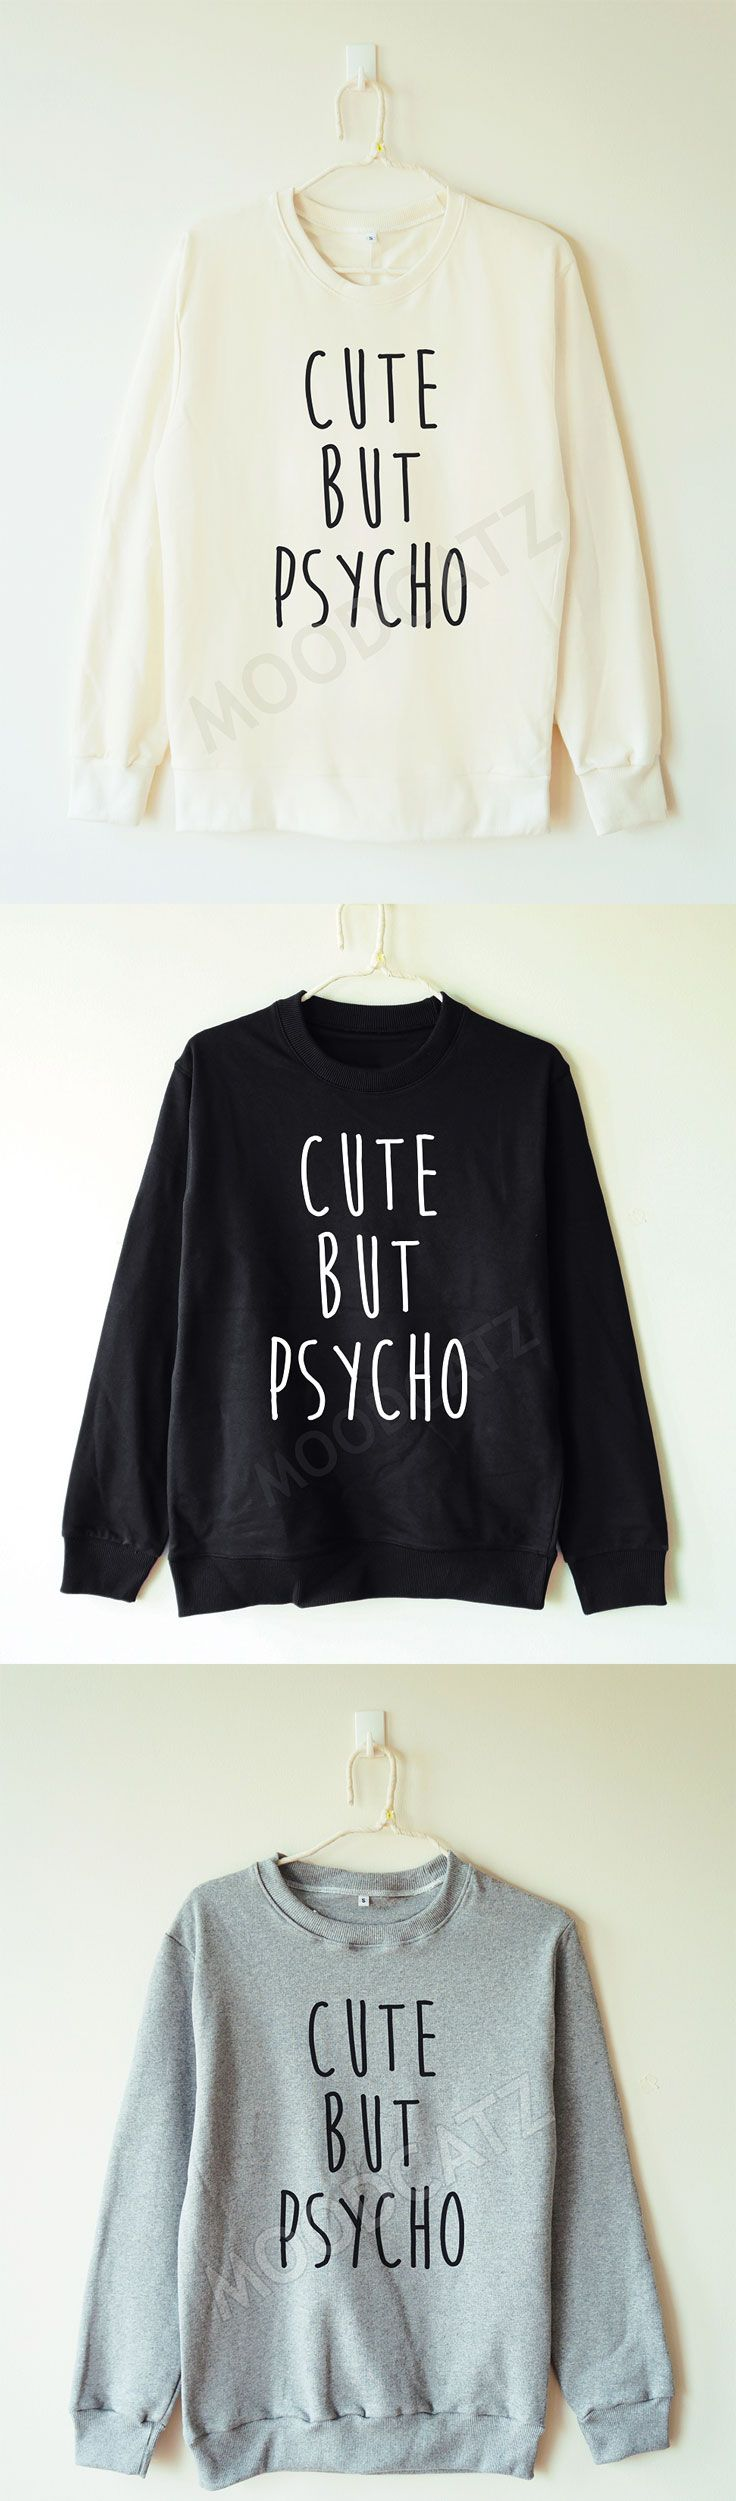 Best 25+ Funny sweaters ideas only on Pinterest | Funny hoodies ...